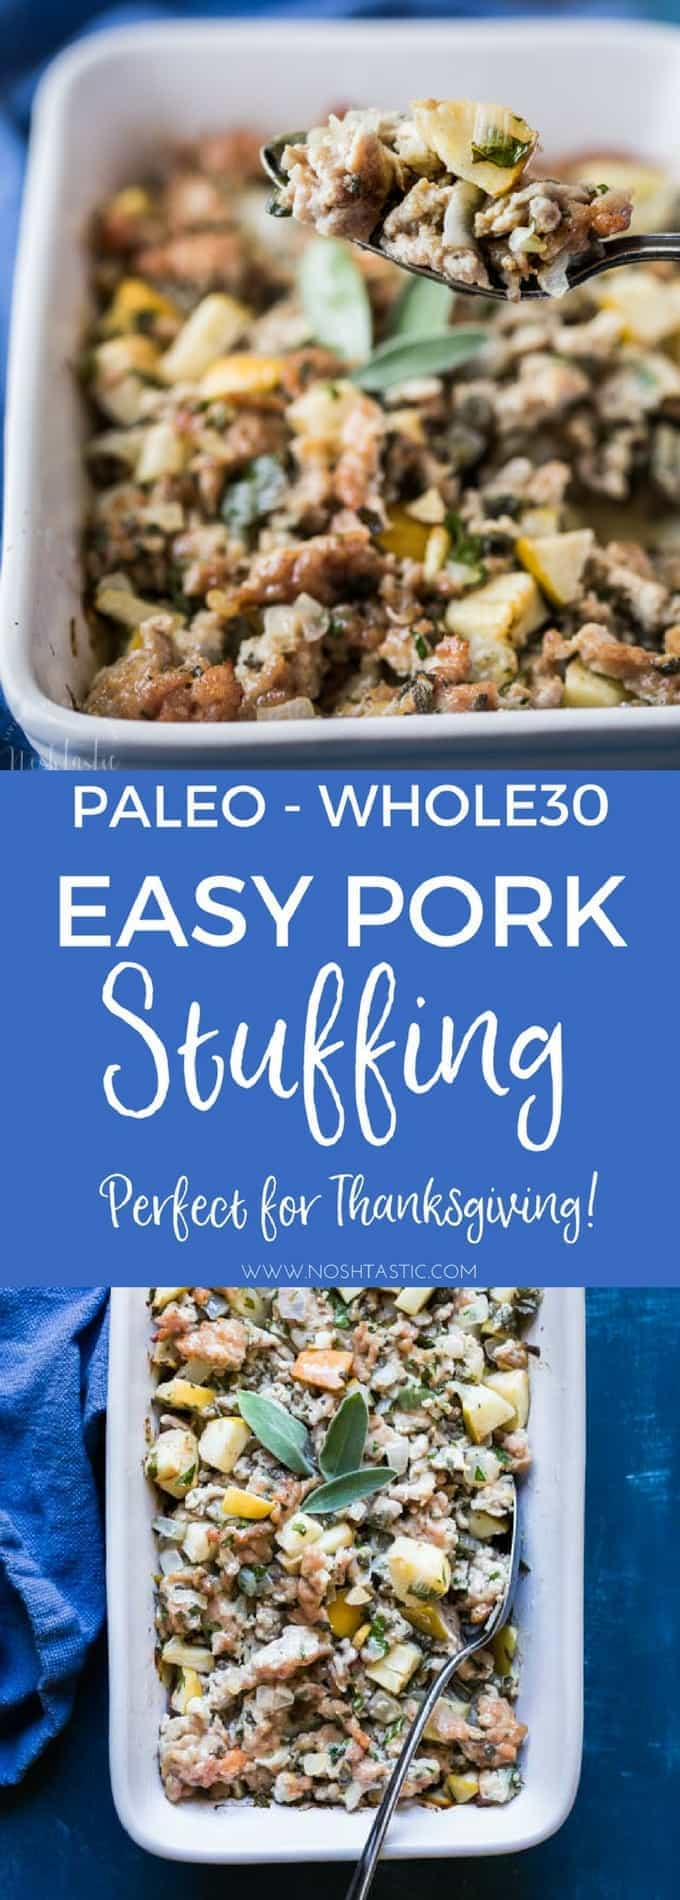 You'll love my easy Paleo Thanksgiving Stuffing recipe, a perfect accompaniment to your Thanksgiving Turkey dinner! #paleo #paleothanksgiving #whole30 #glutenfreethanksgiving #paleostuffing #paleodressing